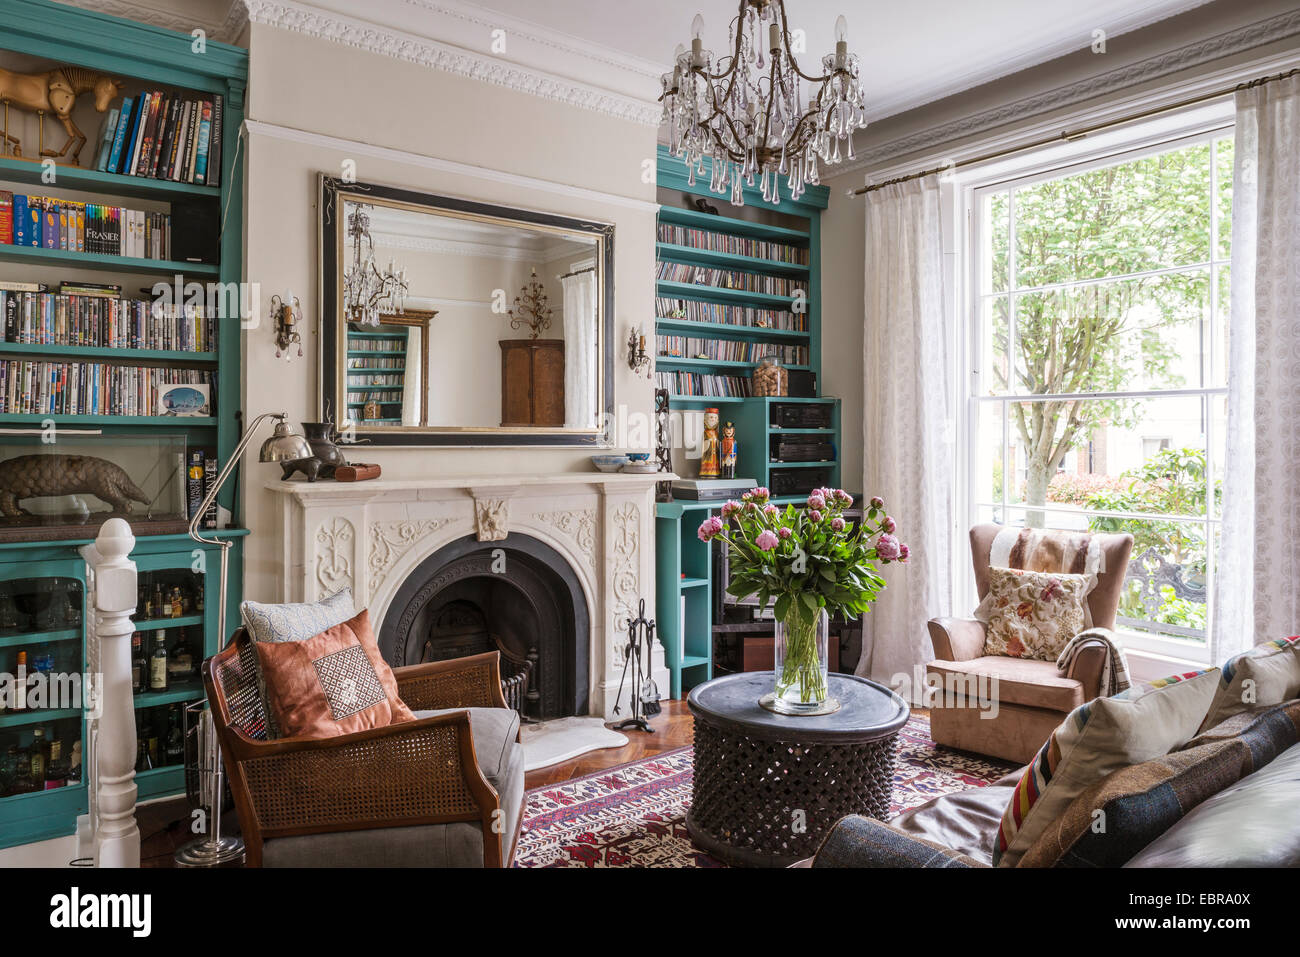 Turquoise shelving in elegant living room with marble fireplace and crystal chandelier - Stock Image